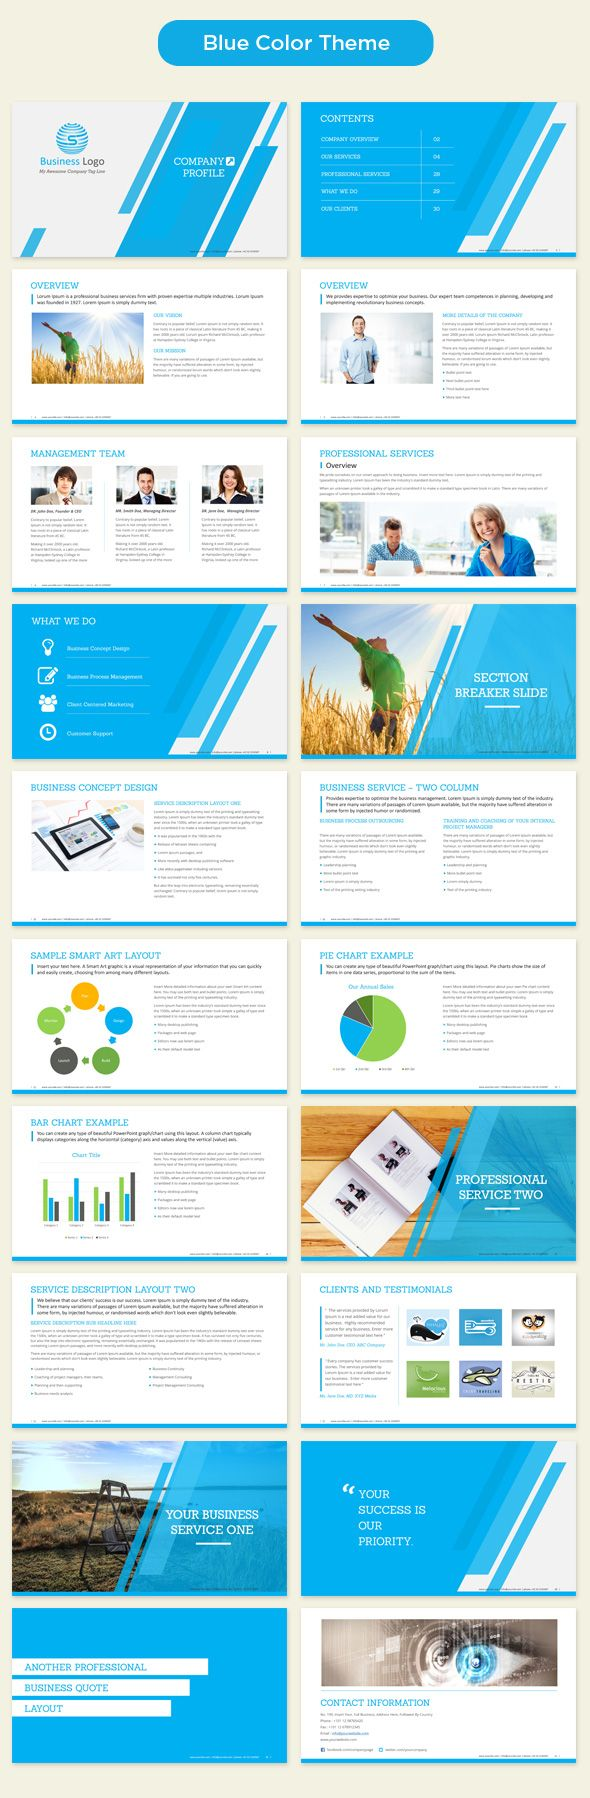 Company Profile Powerpoint Template Blue Preview  Company Portfolio Template